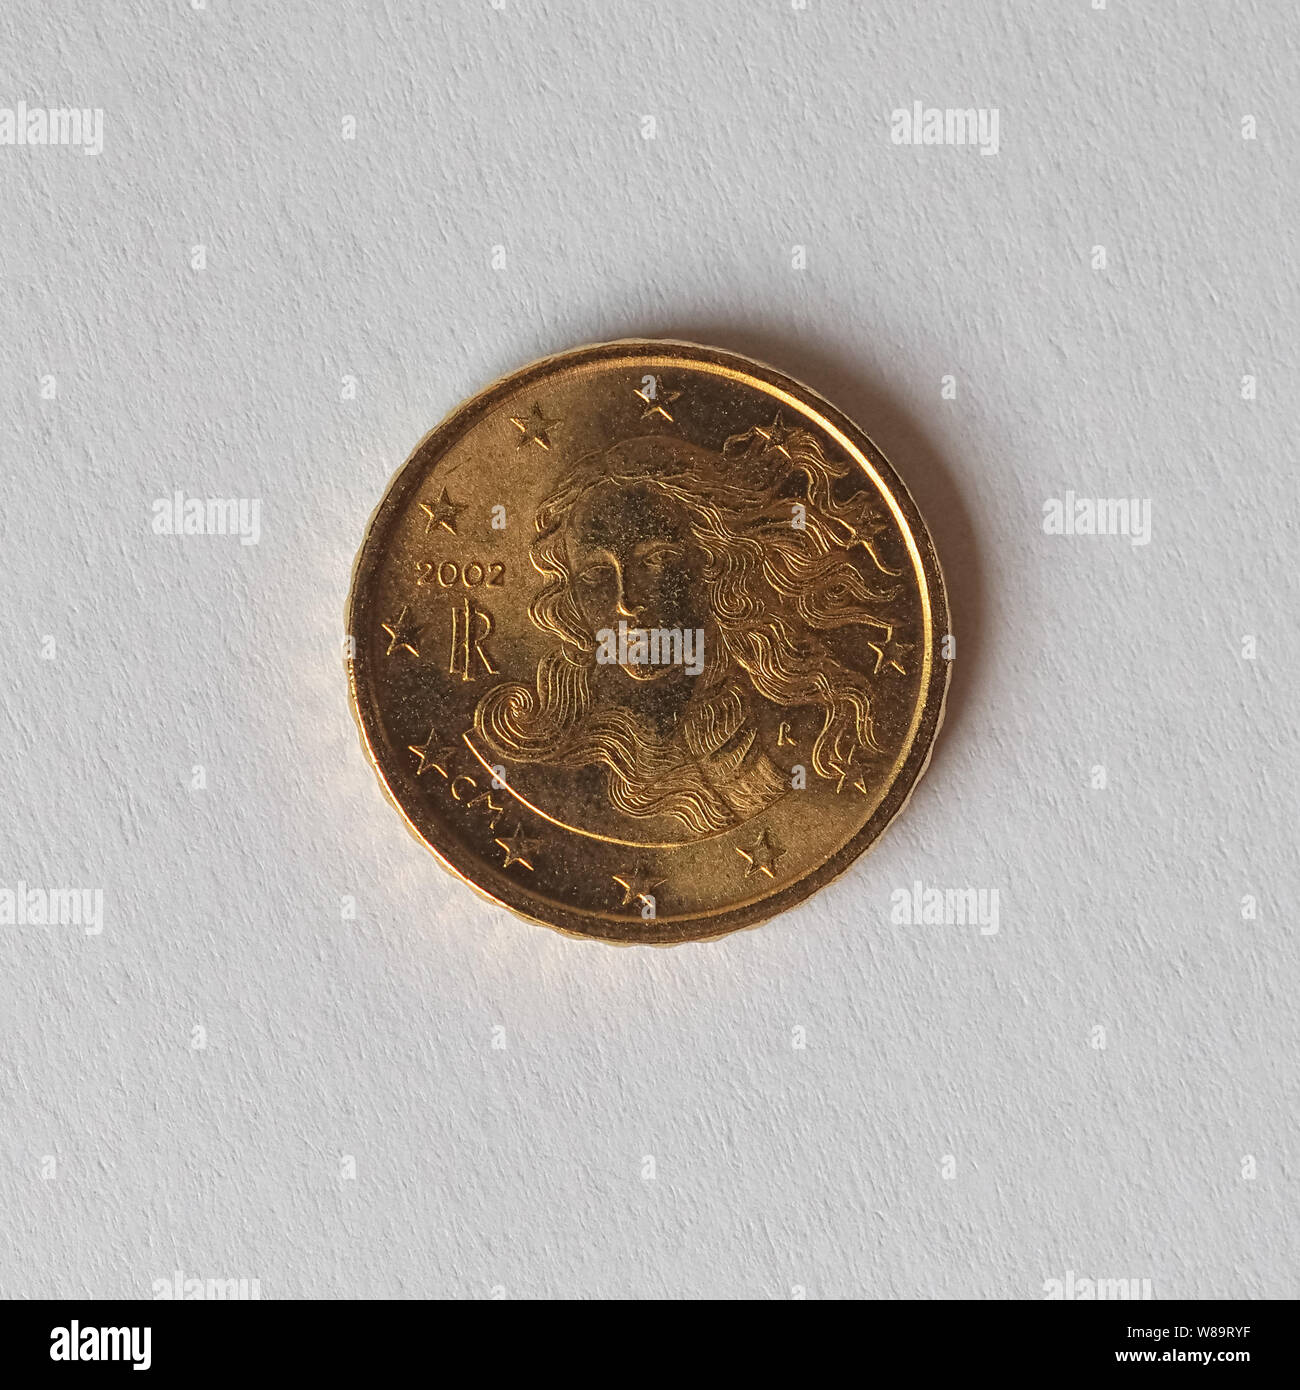 10 cents coin money (EUR), currency of Italy, European Union Stock Photo